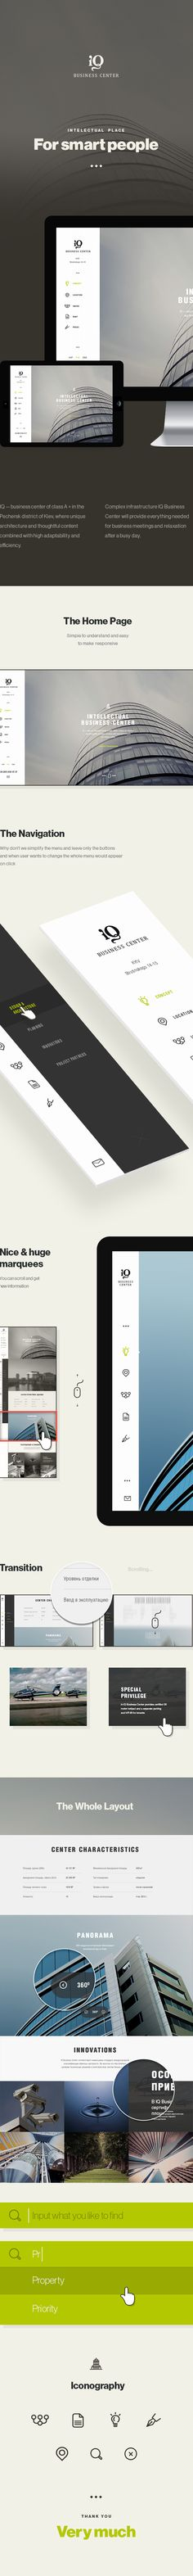 IQBC Responsive Concept by Dima Shvedun, via Behance - Nice vertical navigation